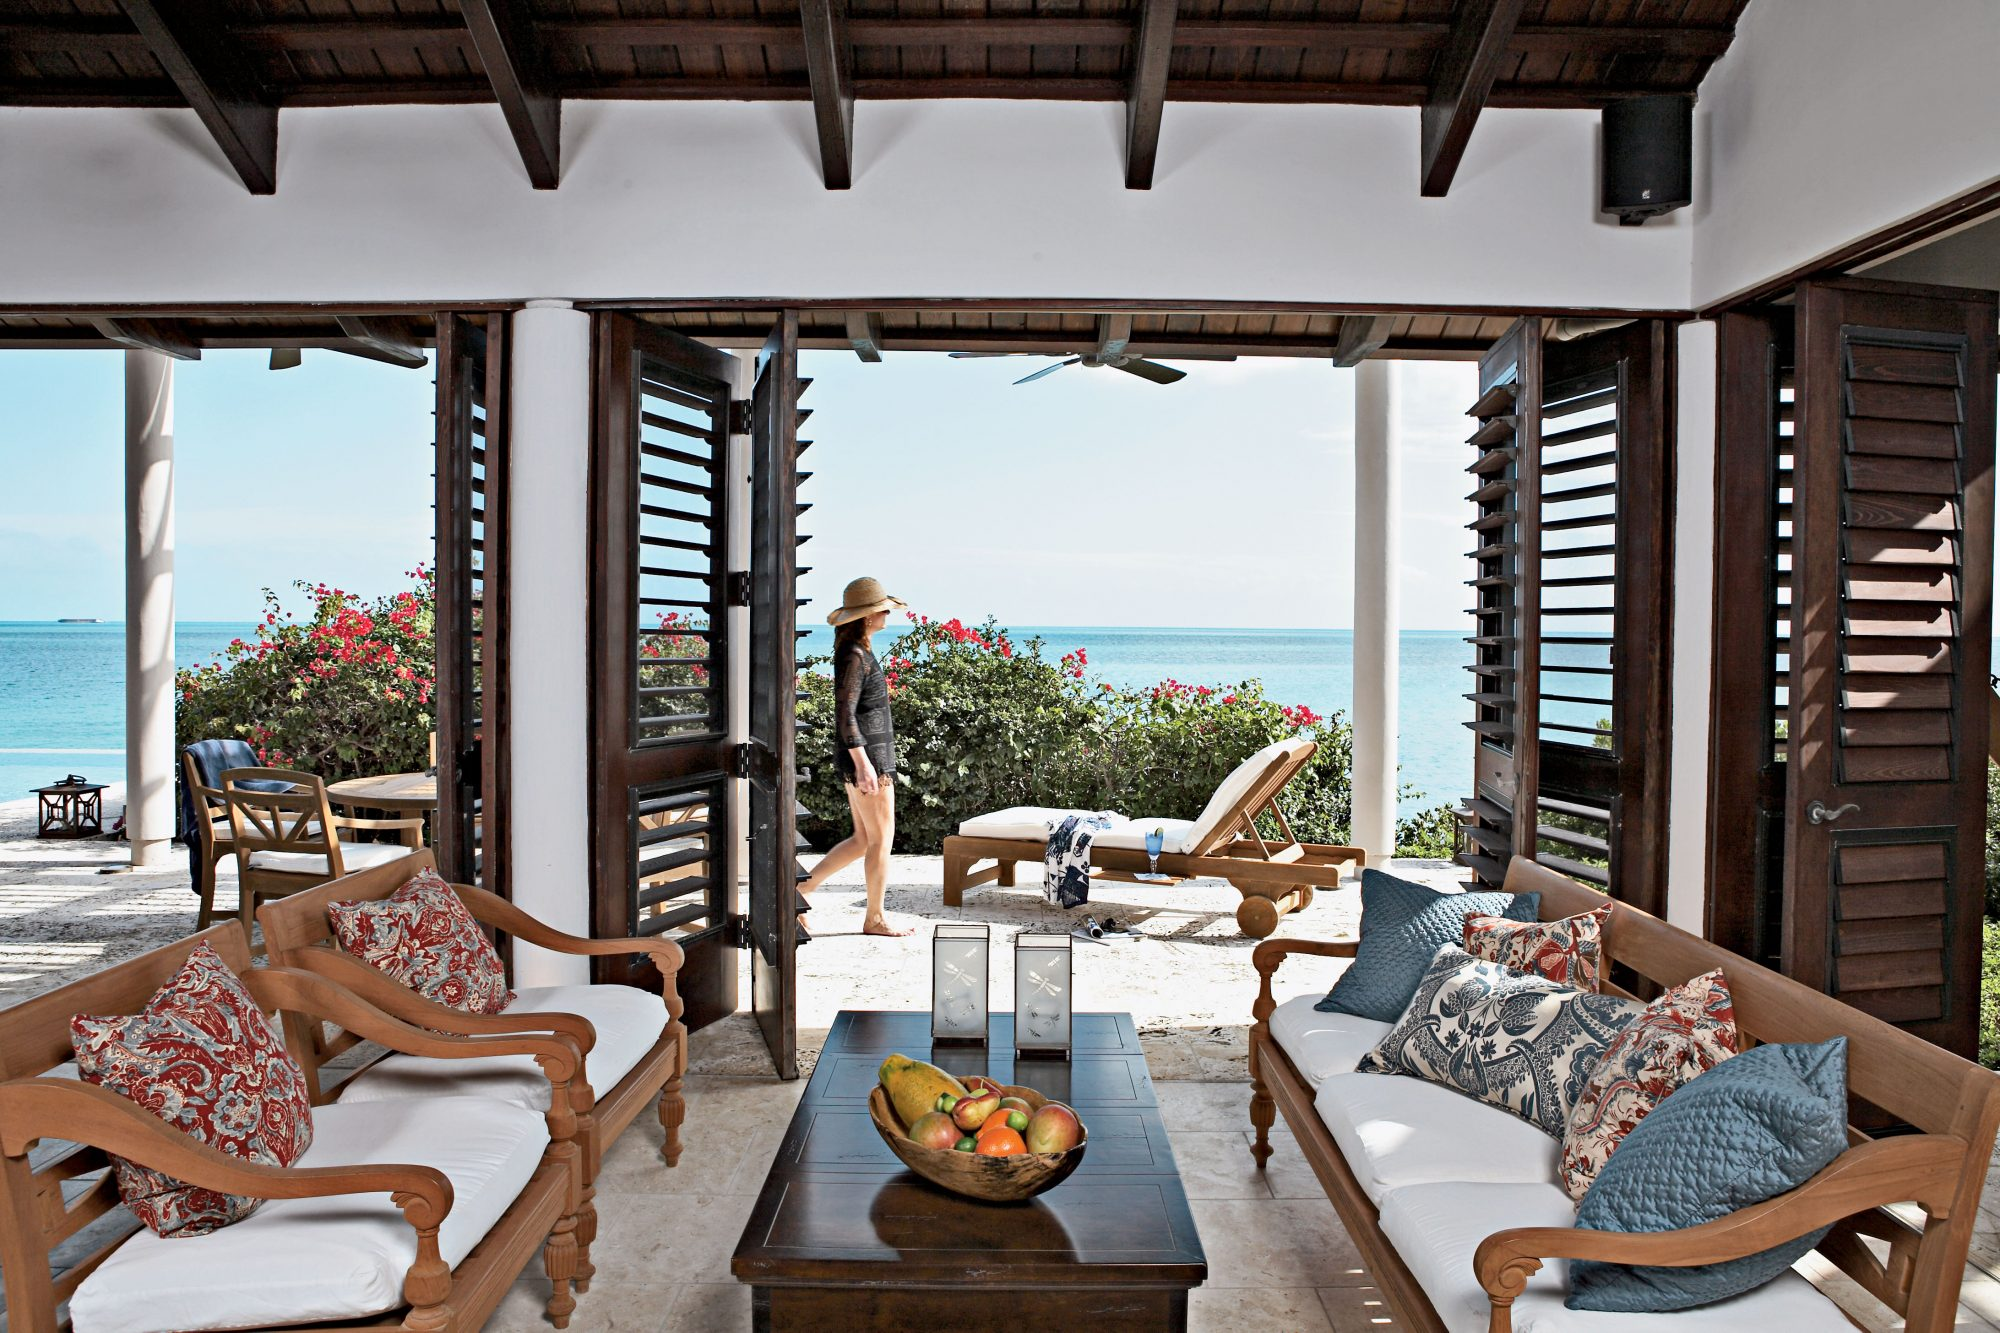 Our 25 Prettiest Island Rooms: Outdoor Living Room